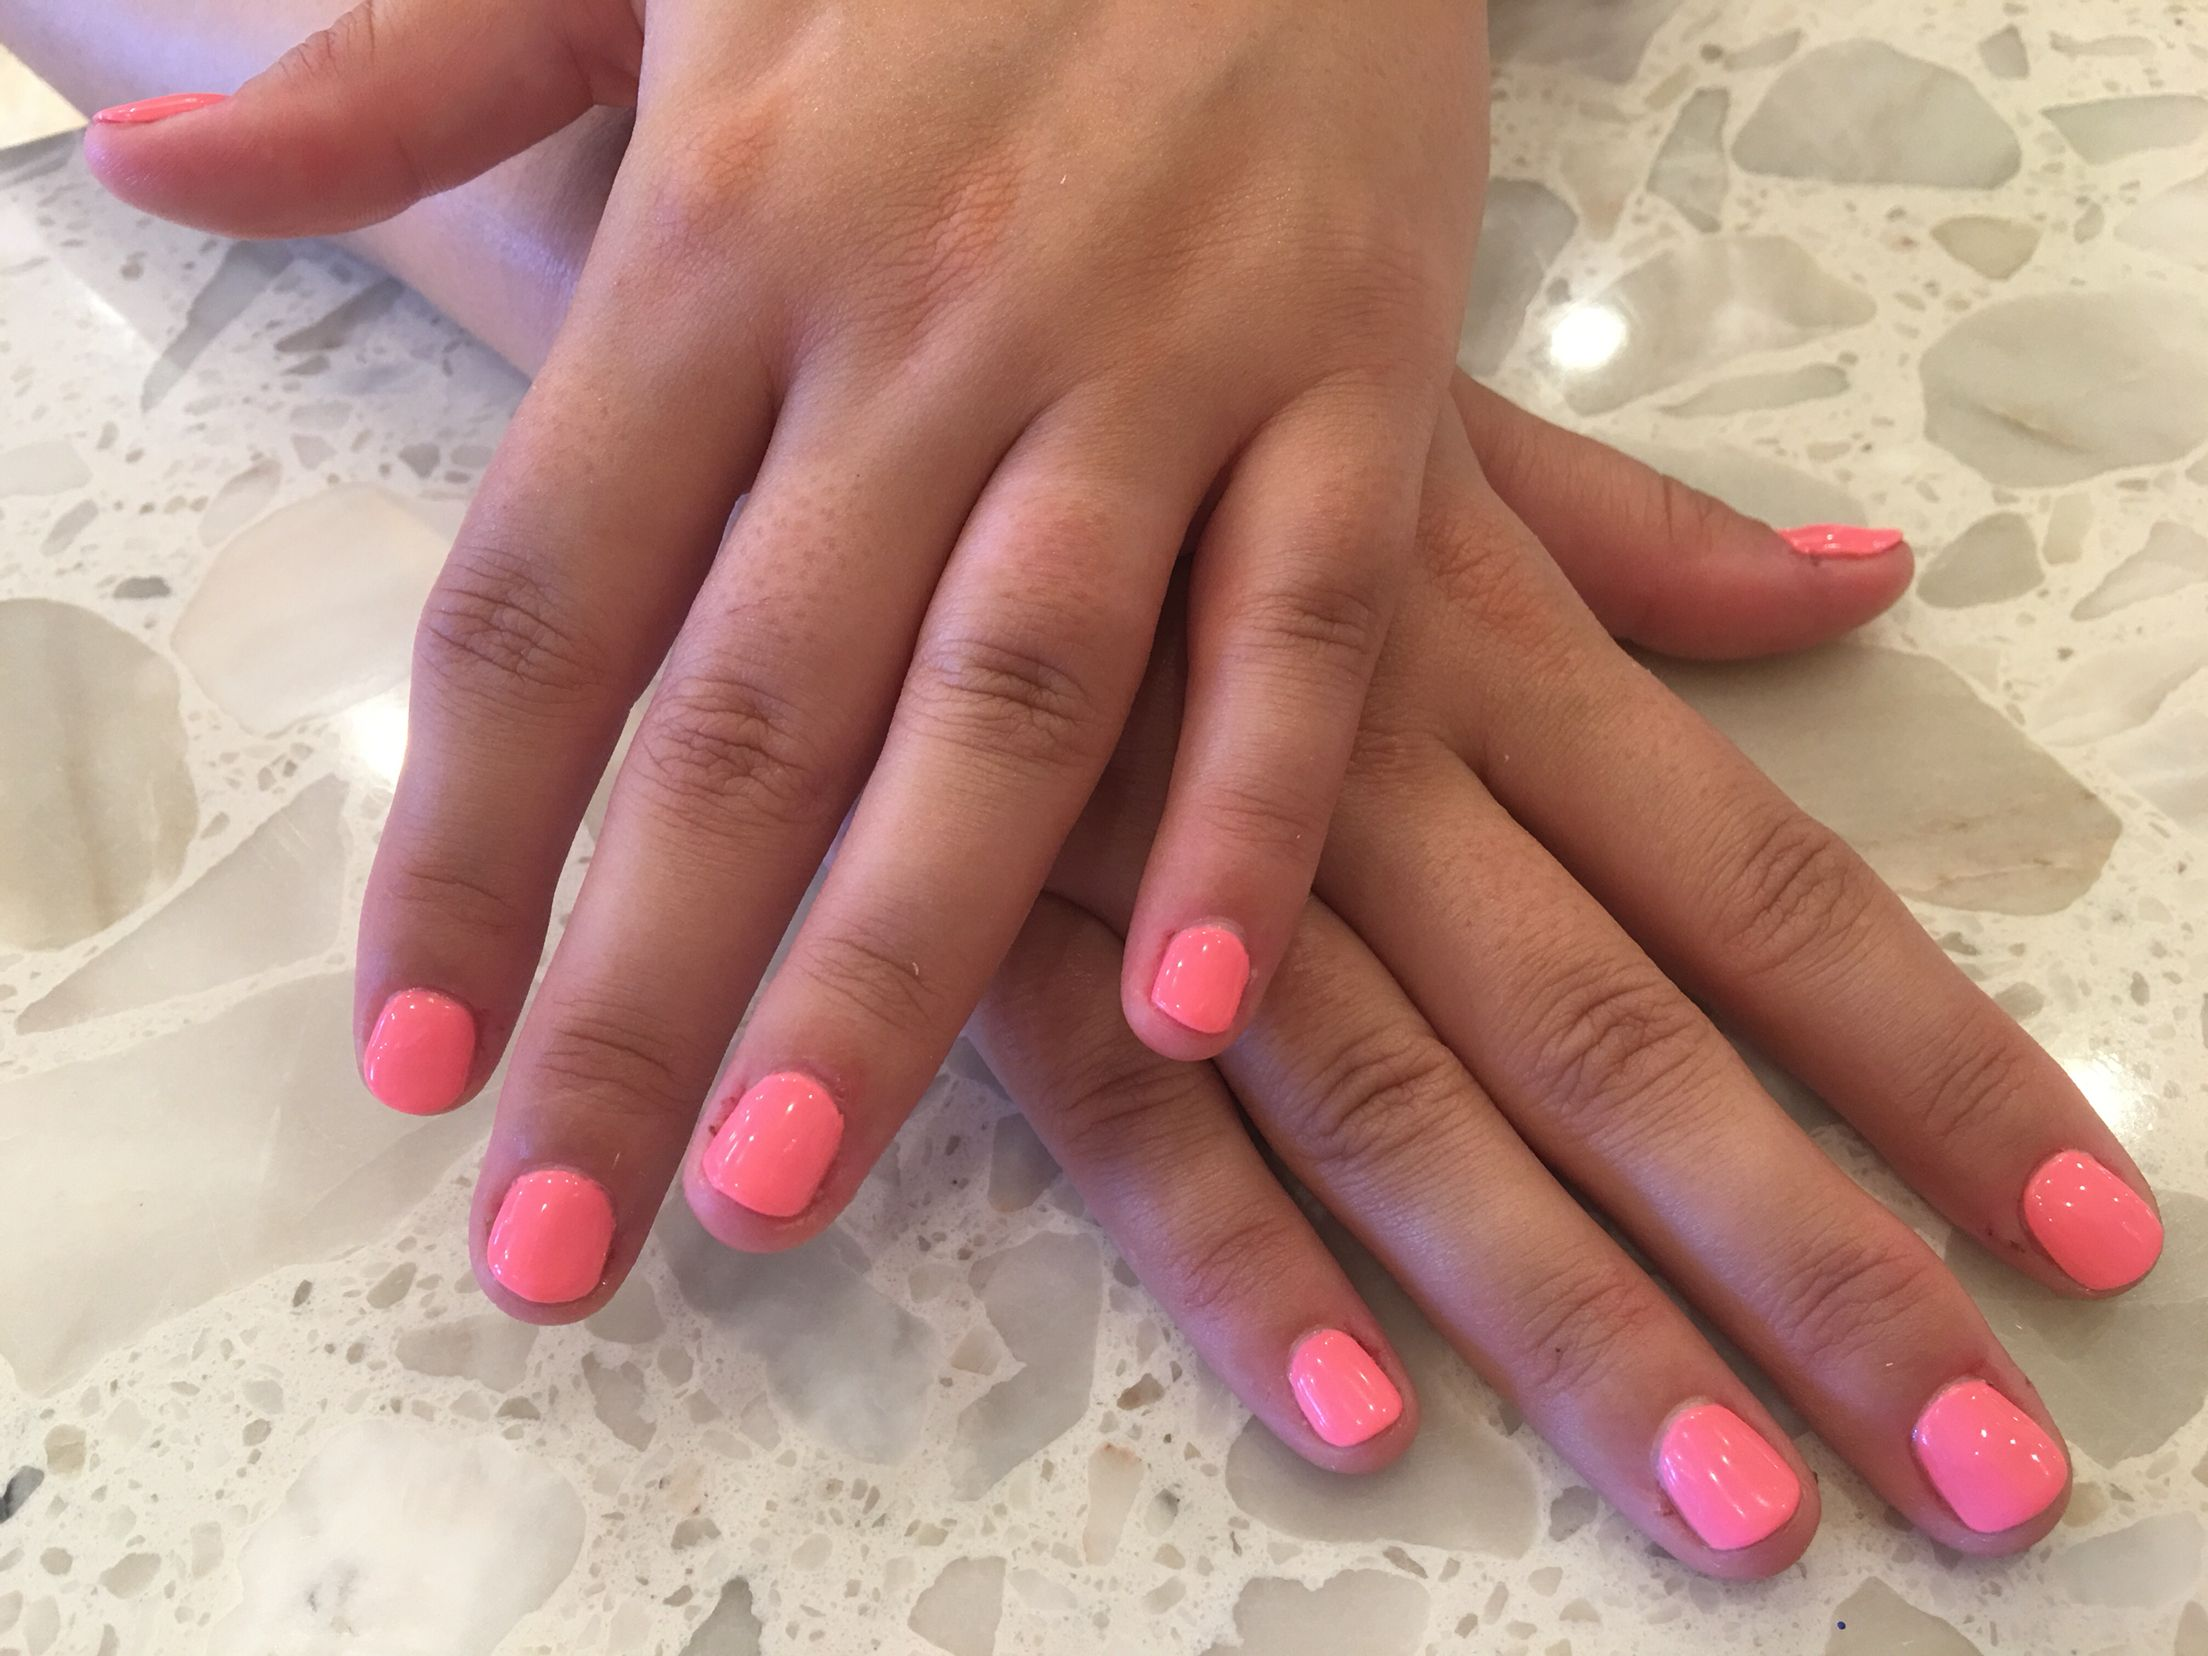 Amazing Kiara Sky Nail Polish Colors Pictures - Nail Art Ideas ...